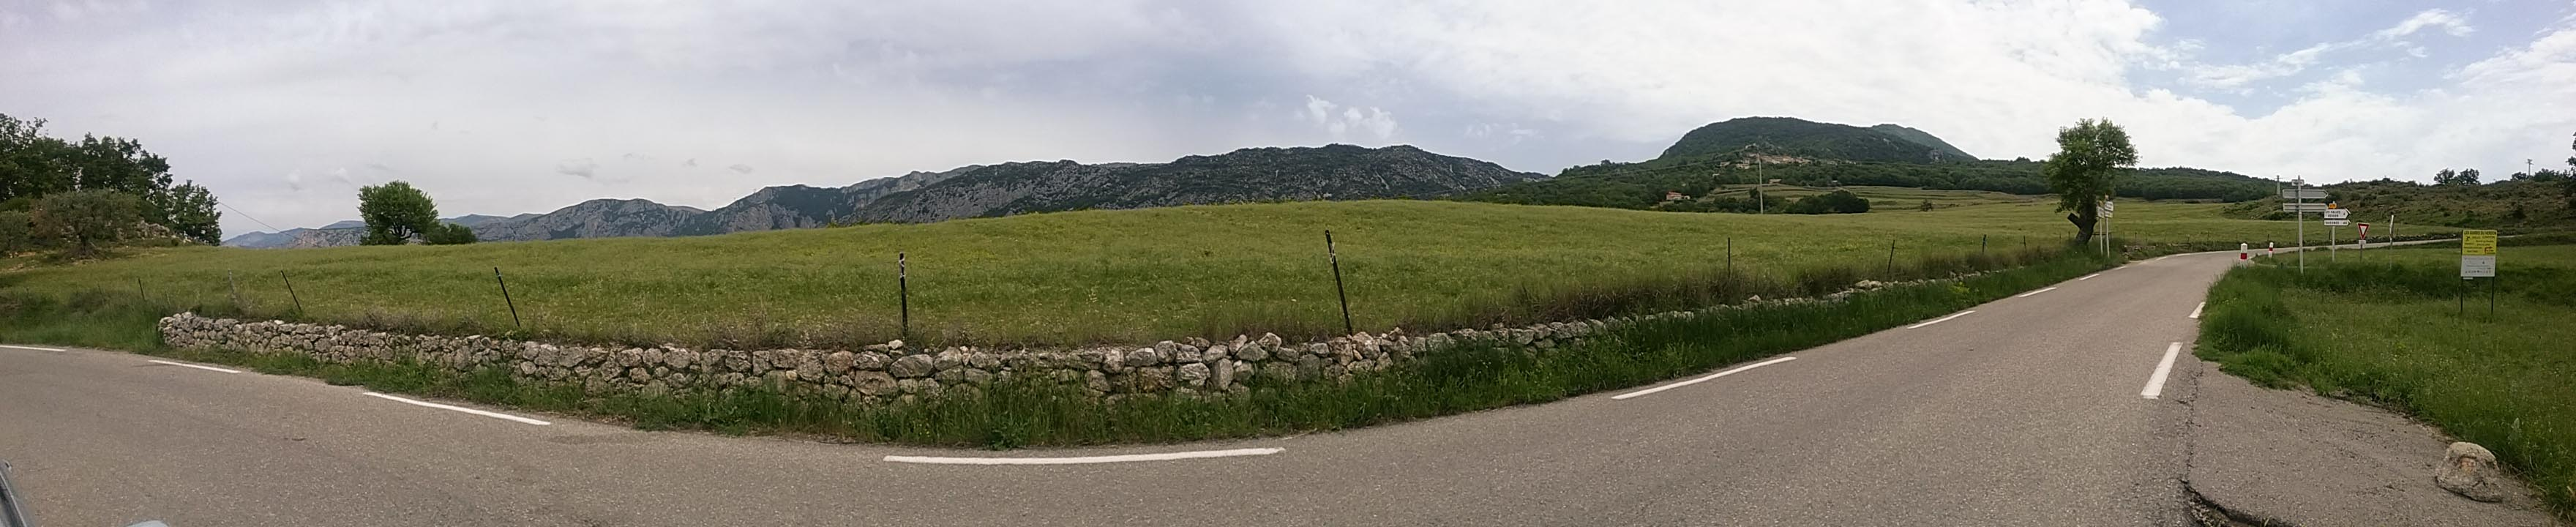 2018 05 Provence PanoramaTablet 003